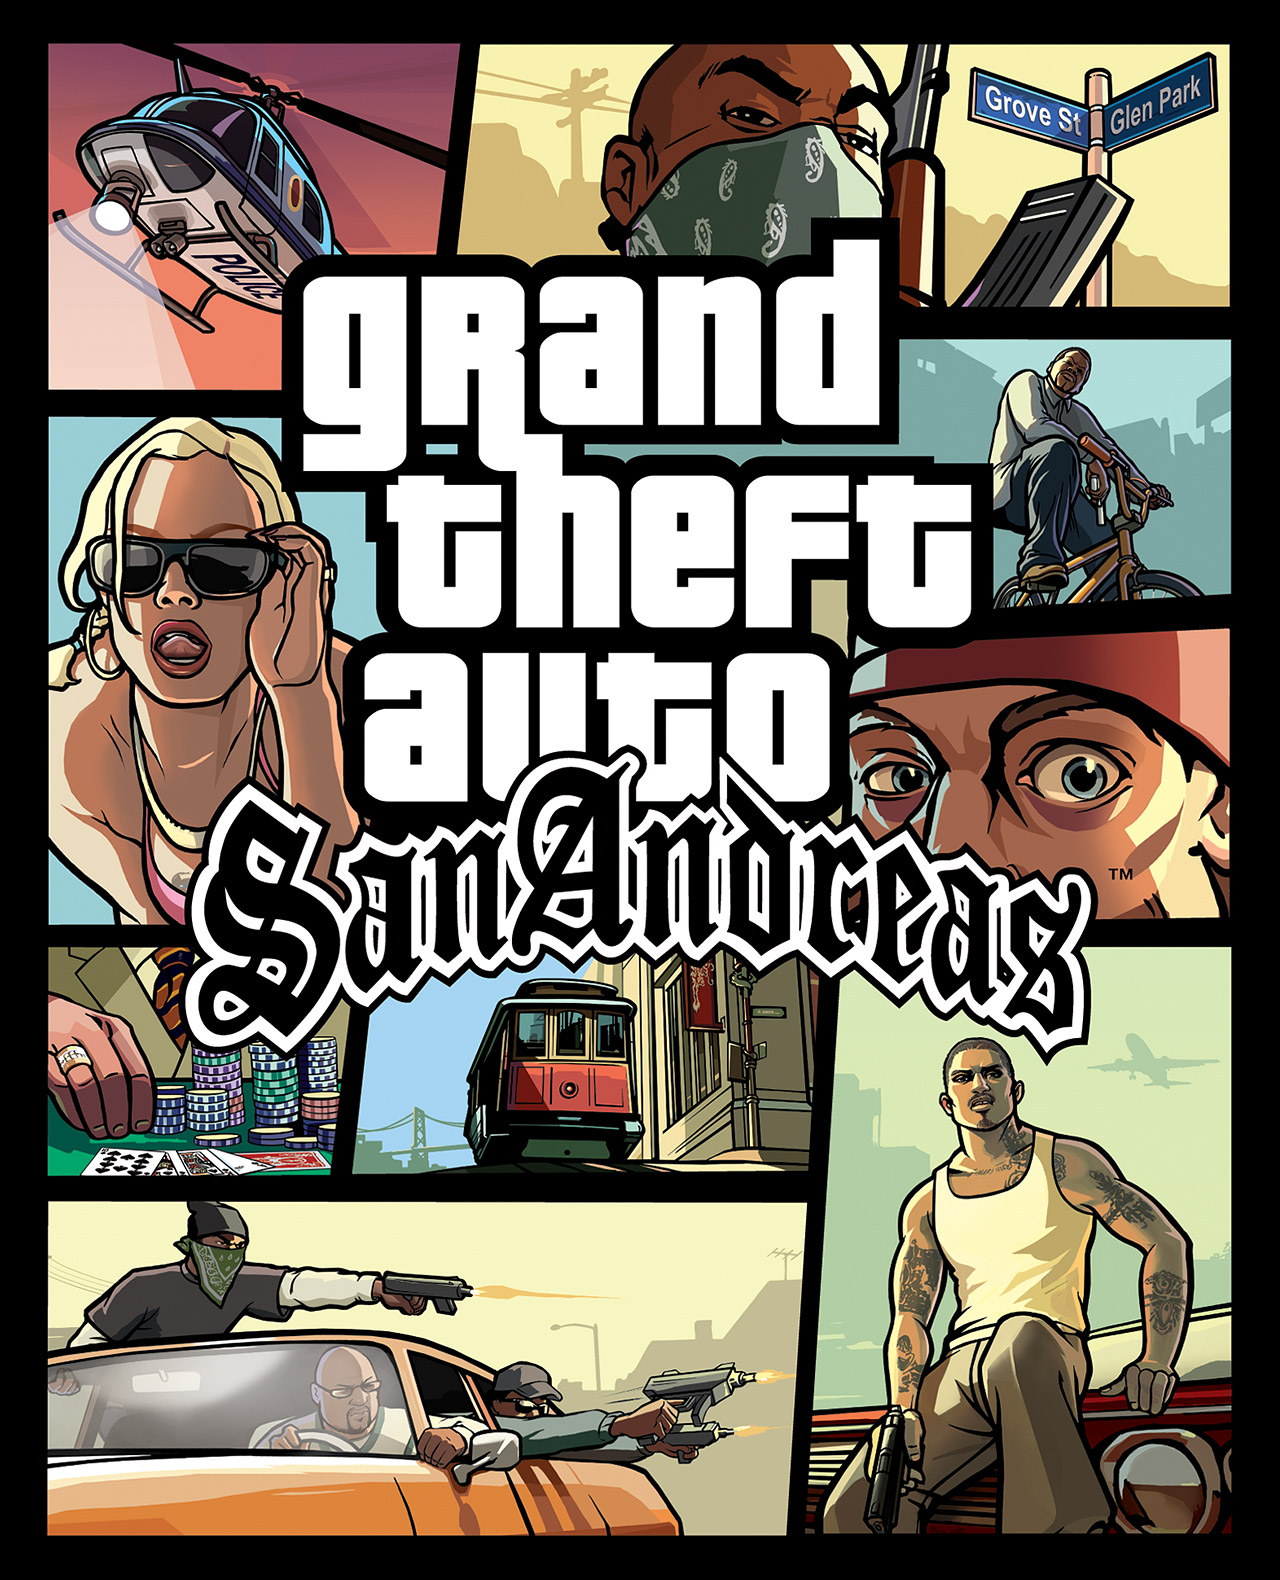 San official guide andreas pdf strategy gta